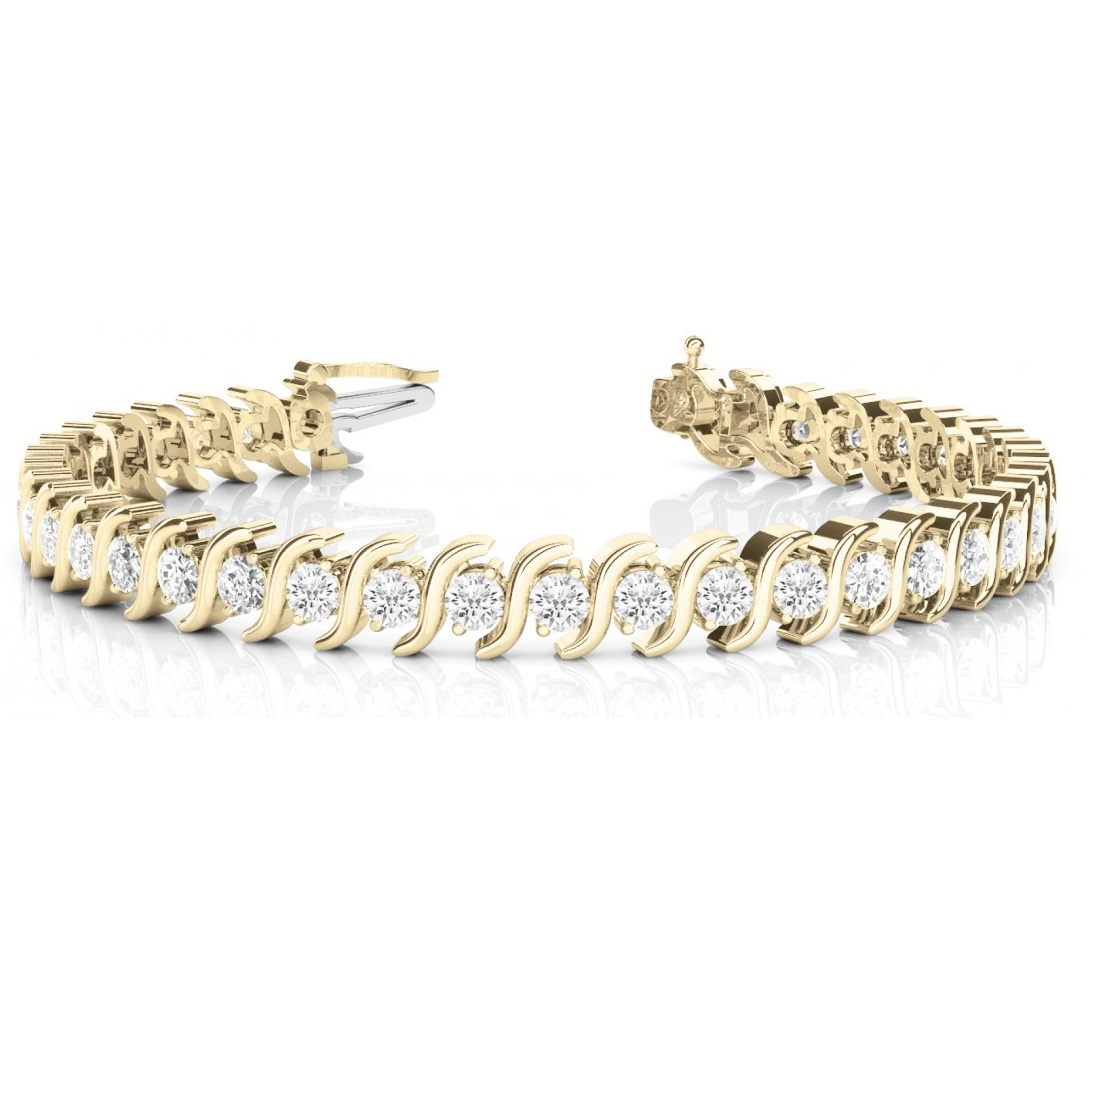 Diamond Tennis S Link Bracelet 18k Yellow Gold (500ct. Antique Silver. Beige Necklace. Vintage Two Tone Engagement Rings. Long Chains. Hand Crafted Wedding Rings. Coral Rings. Where To Buy Anklets. Designs Beads